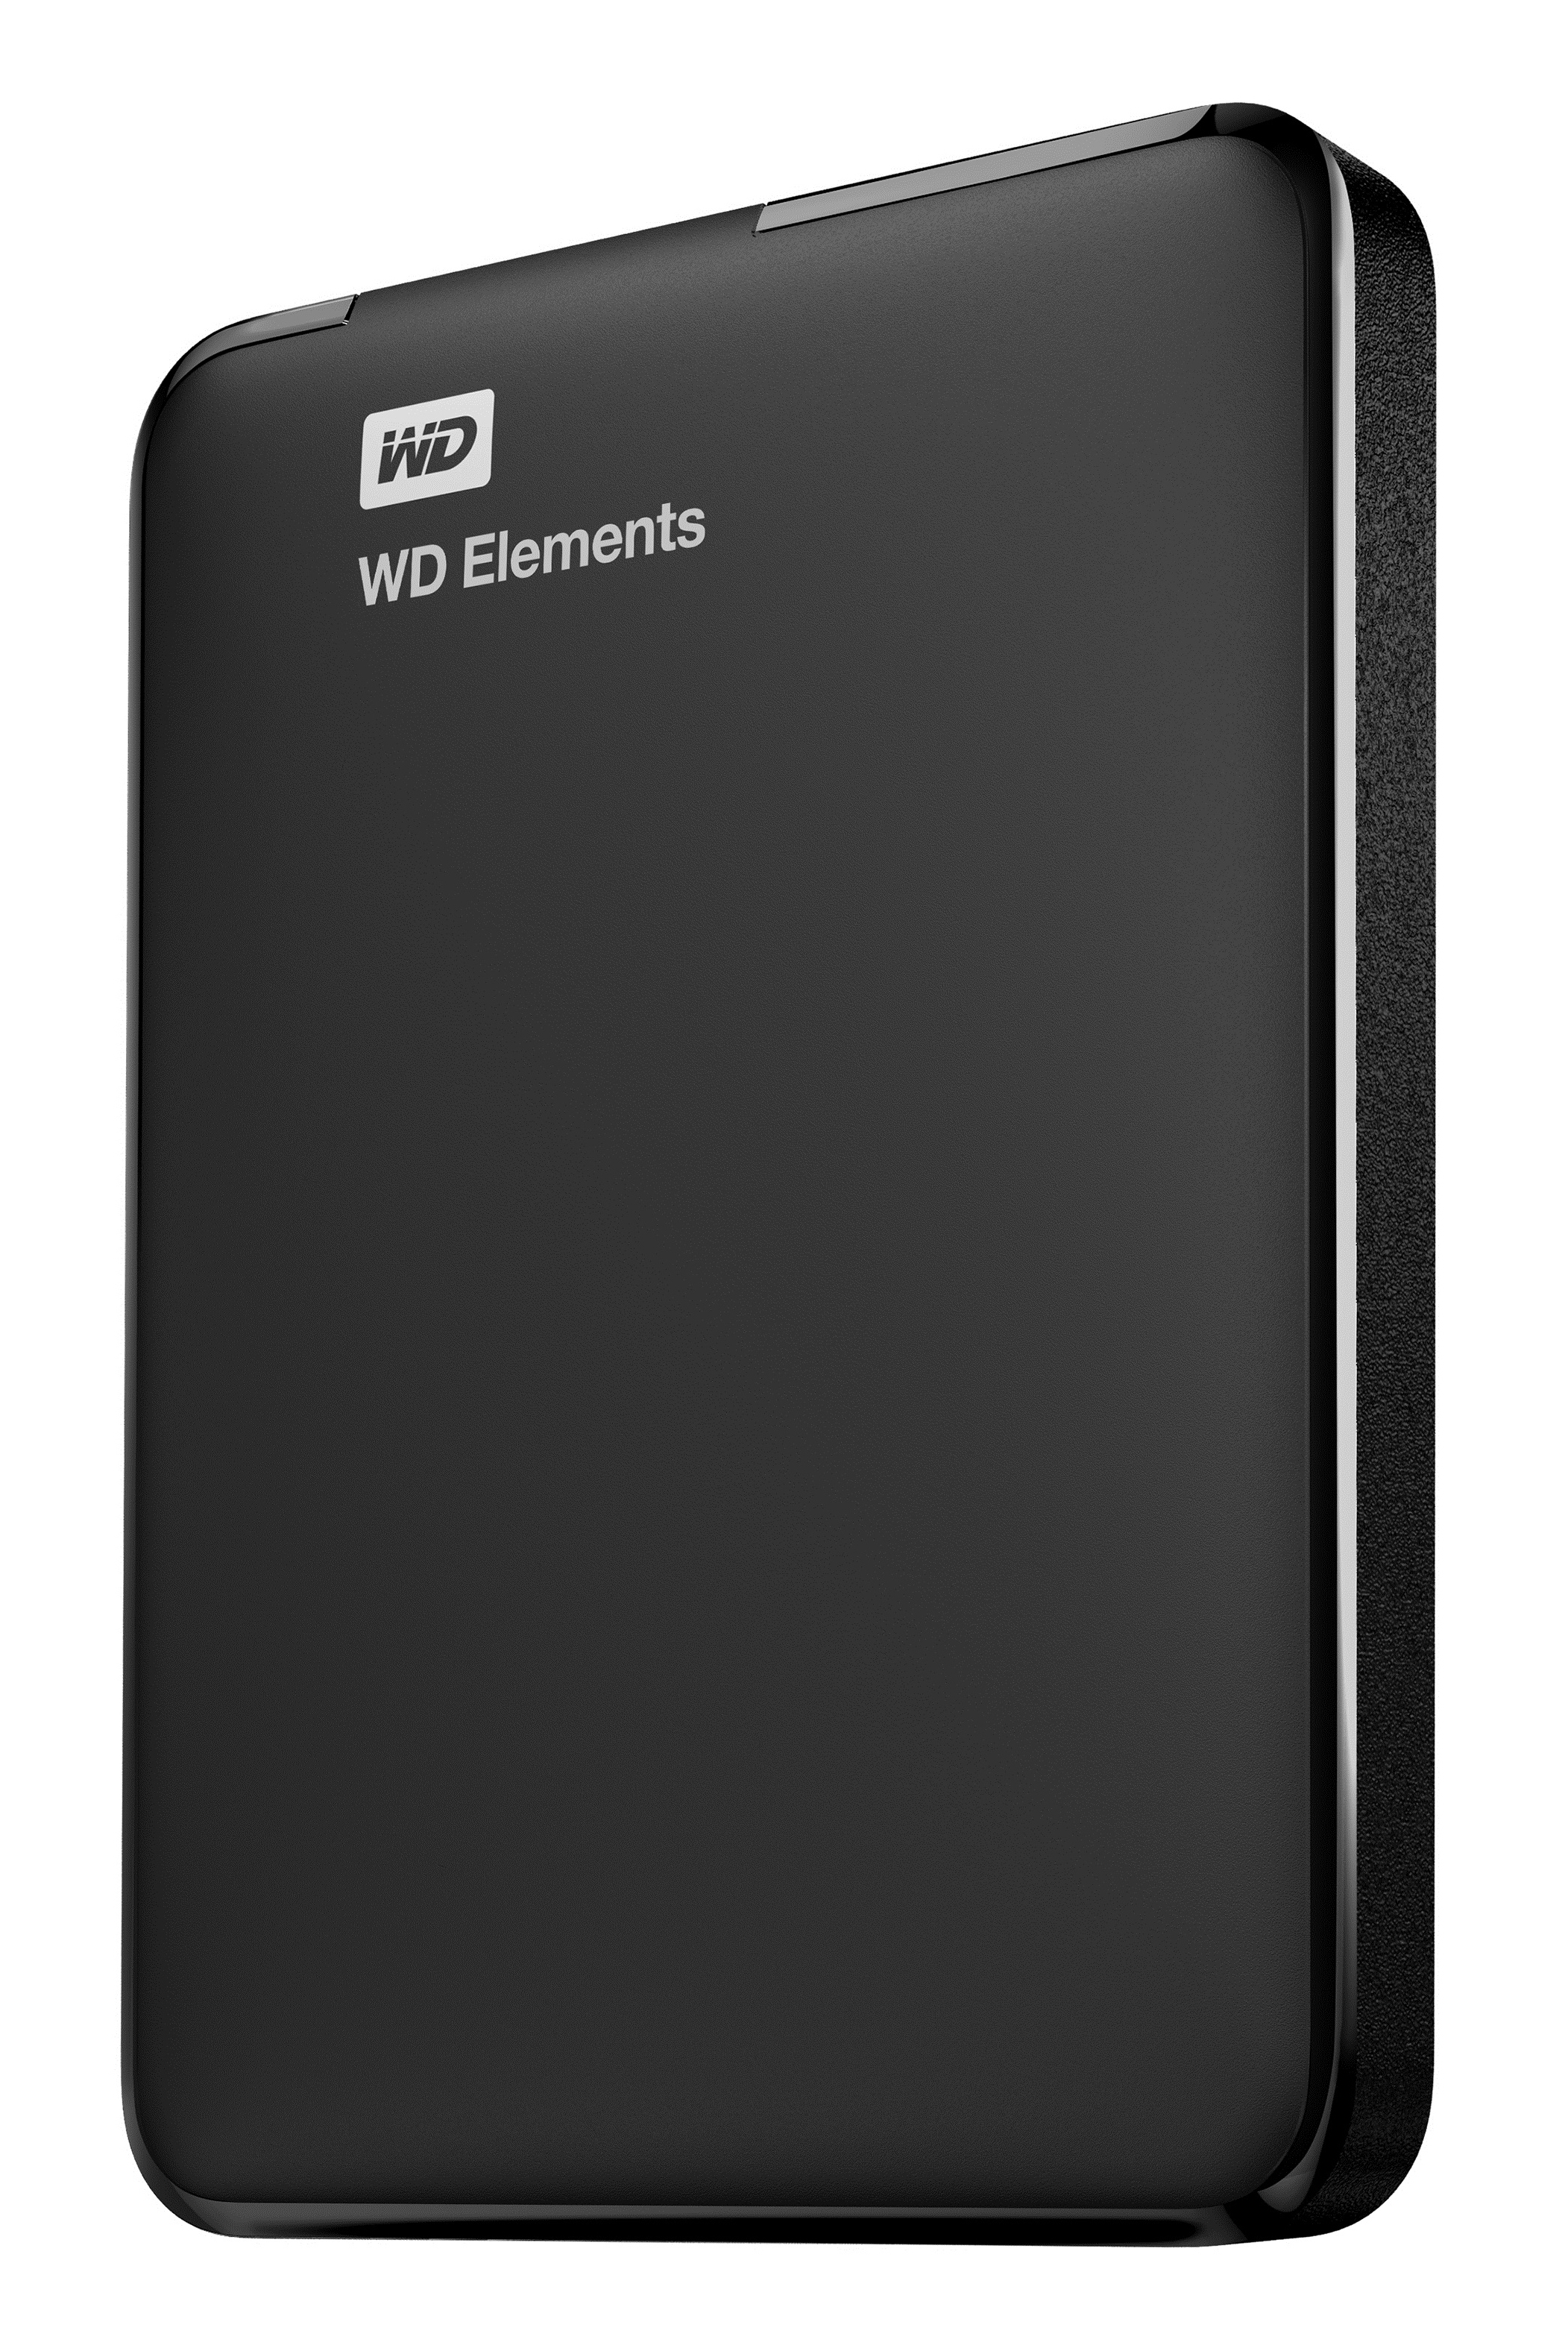 HD W.DIGITAL ELEM. 4TB 2.5 USB 3.0